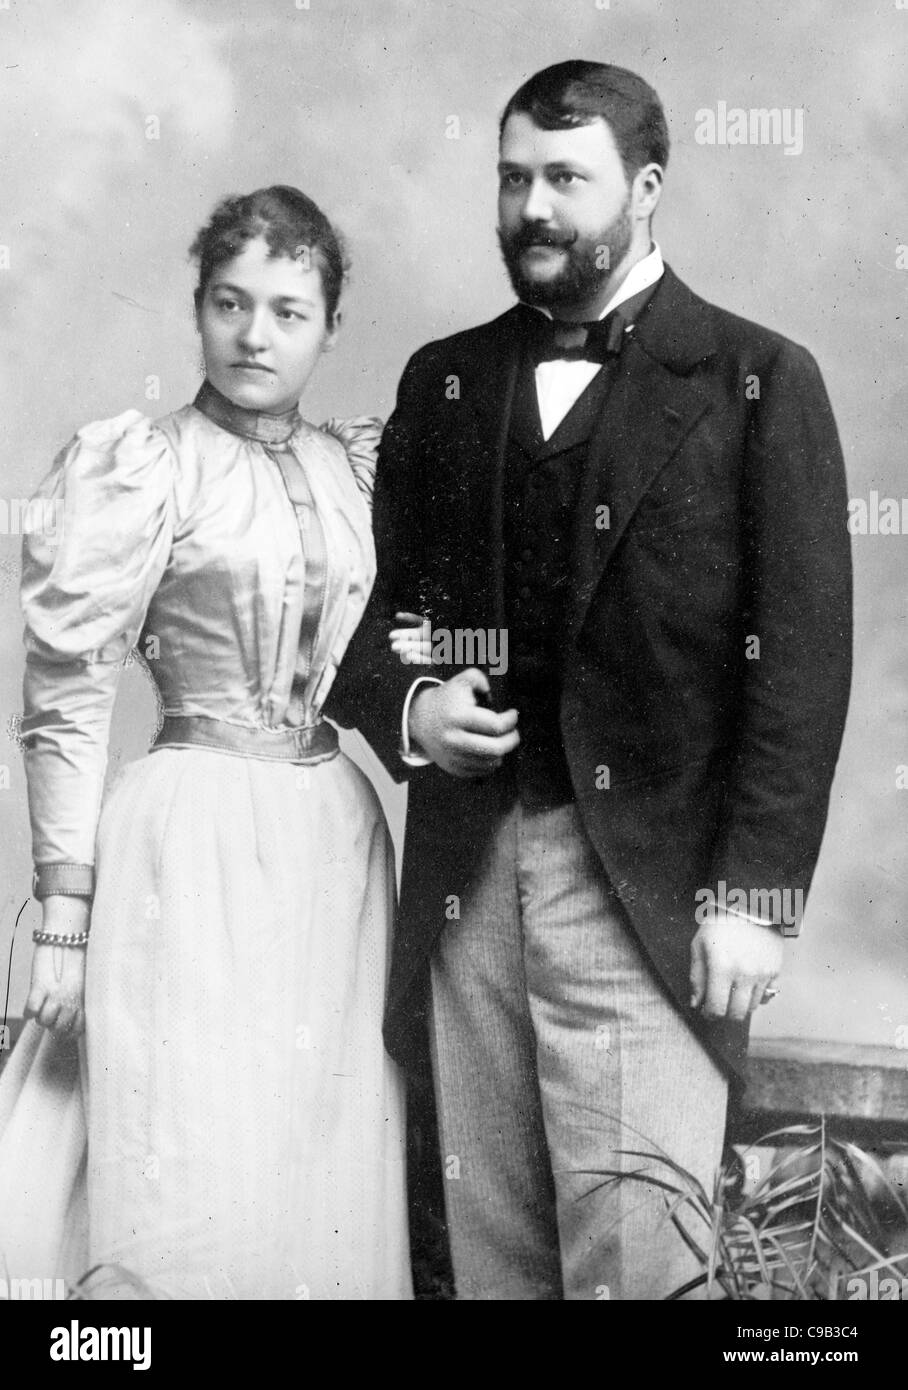 Count Johann Hadik and wife - Stock Image